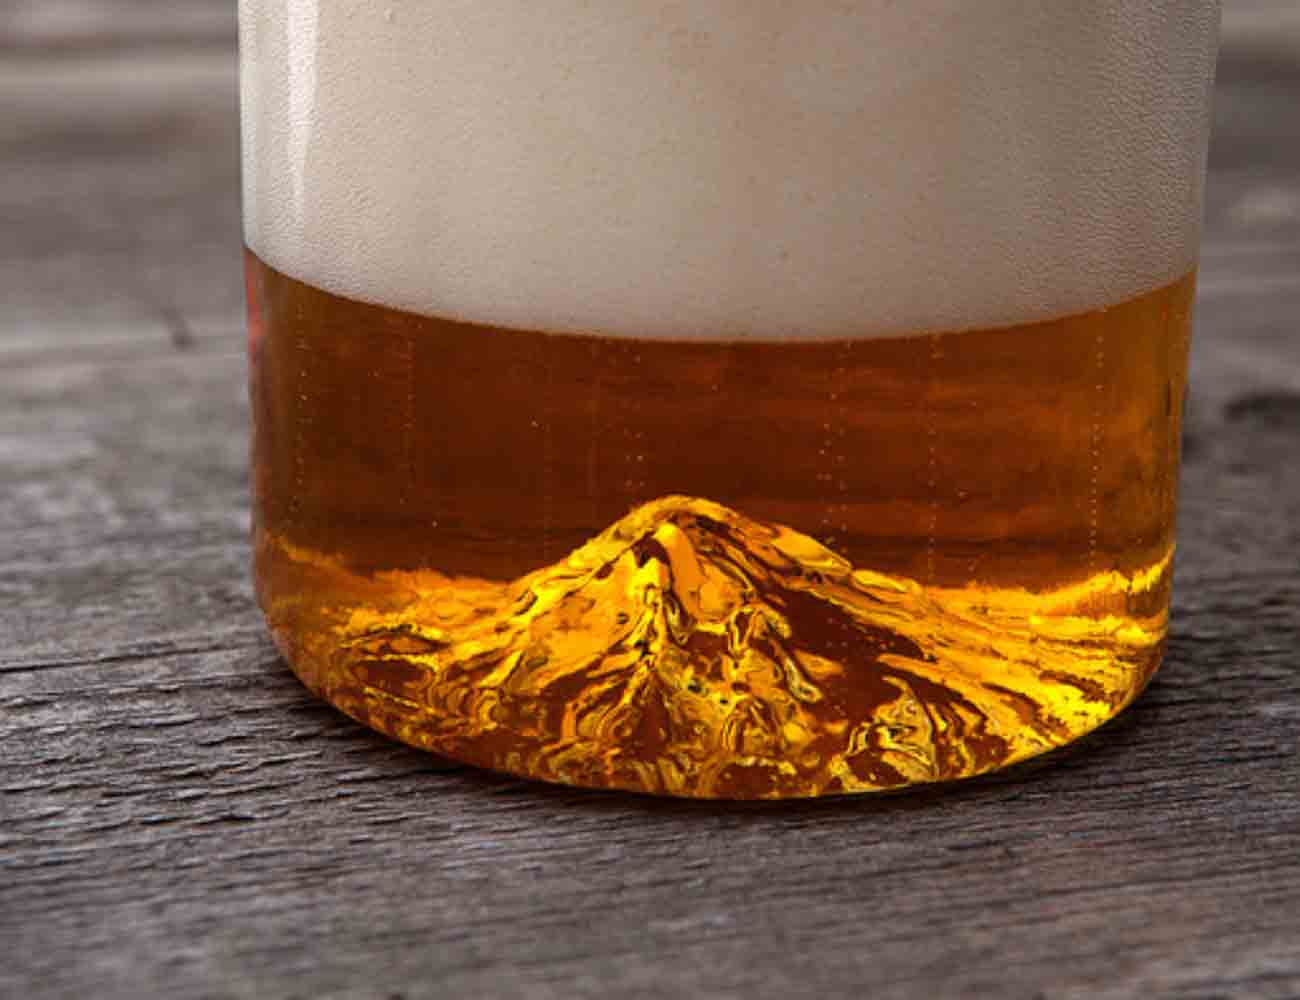 The Oregon Pint Glass by North Drinkware